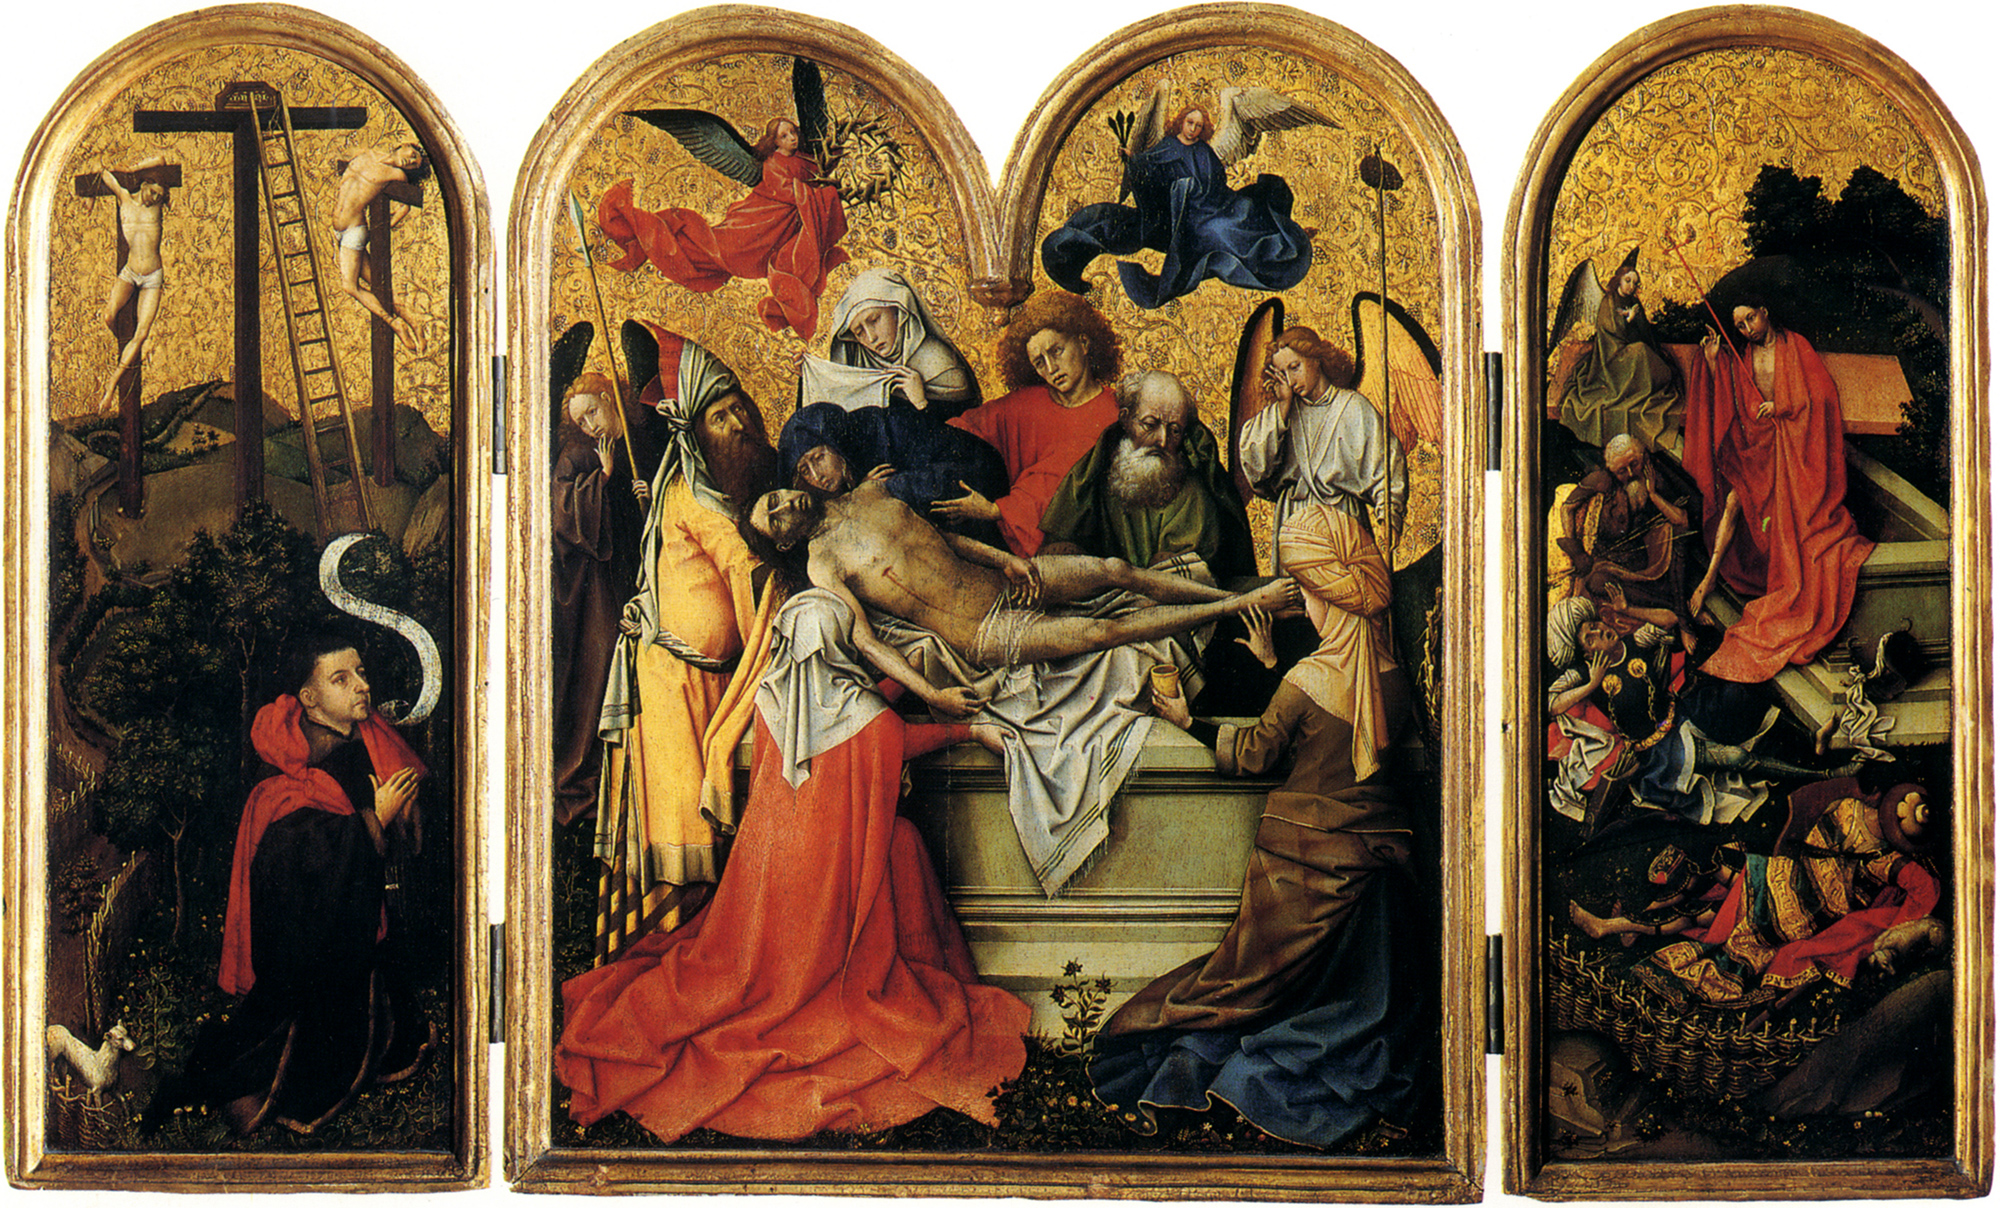 File:Triptych-with-the-entombment-of-christ-1822.jpg - Wikimedia ...